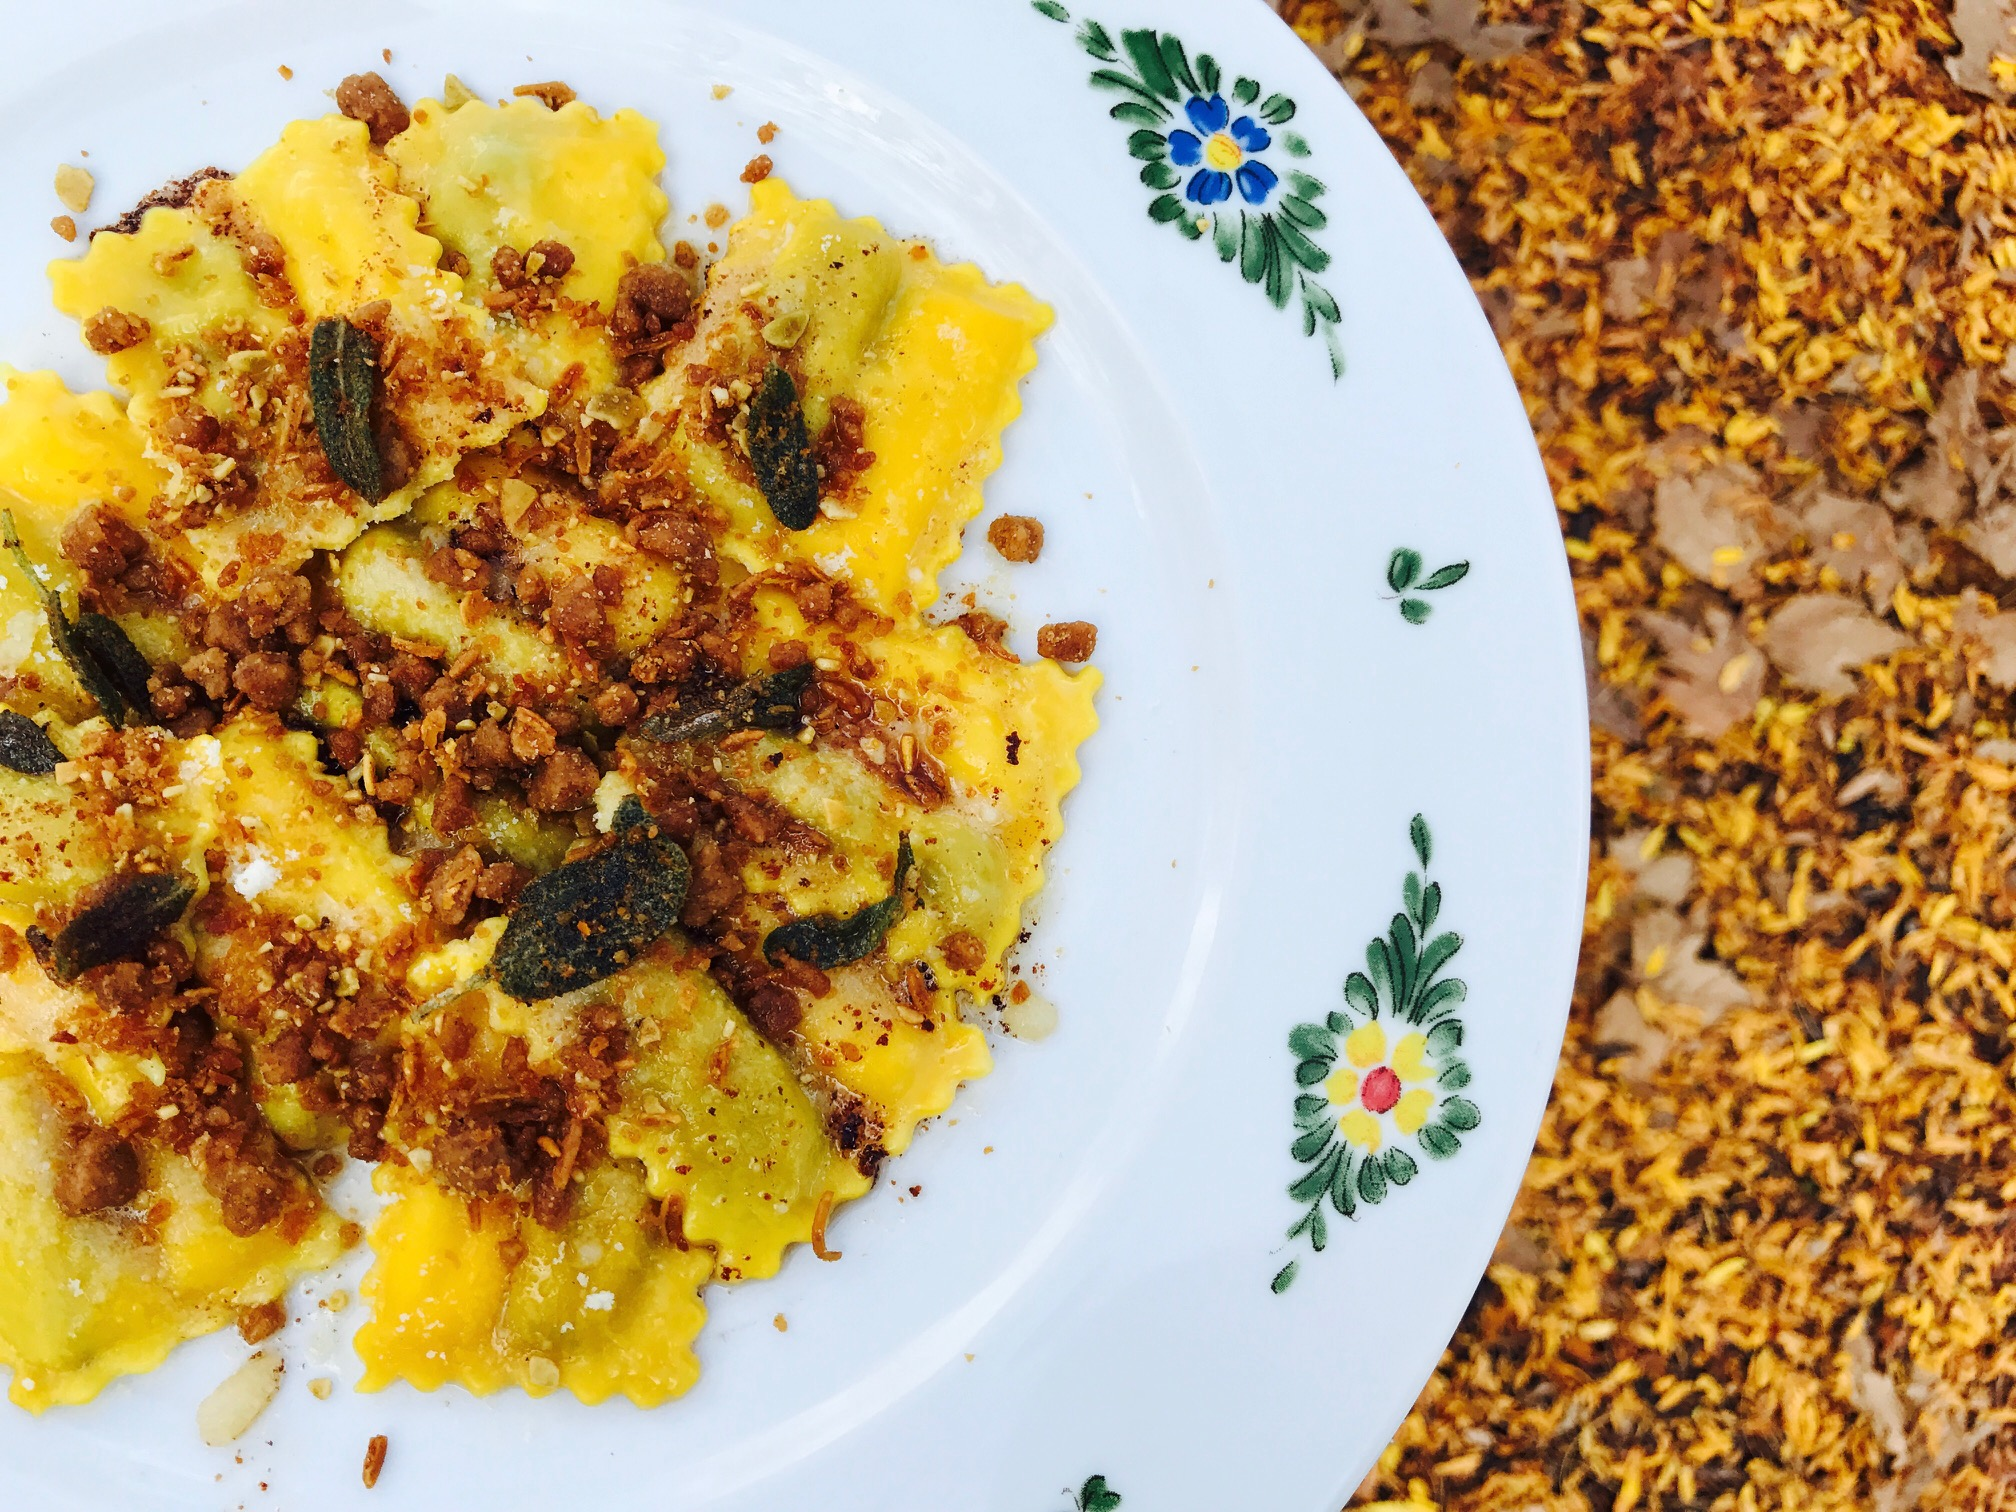 <p>Pumpkin Ravioli from Chef Ben Pflaumer of Osteria Morini: Making ravioli from scratch requires a little time and effort in the kitchen, but the results are well worth it. This seasonal pumpkin-stuffed ravioli from Osteria Morini is basted in brown butter, Parmigiano, and sage. (Image: Courtesy Osteria Morini)</p><p></p>